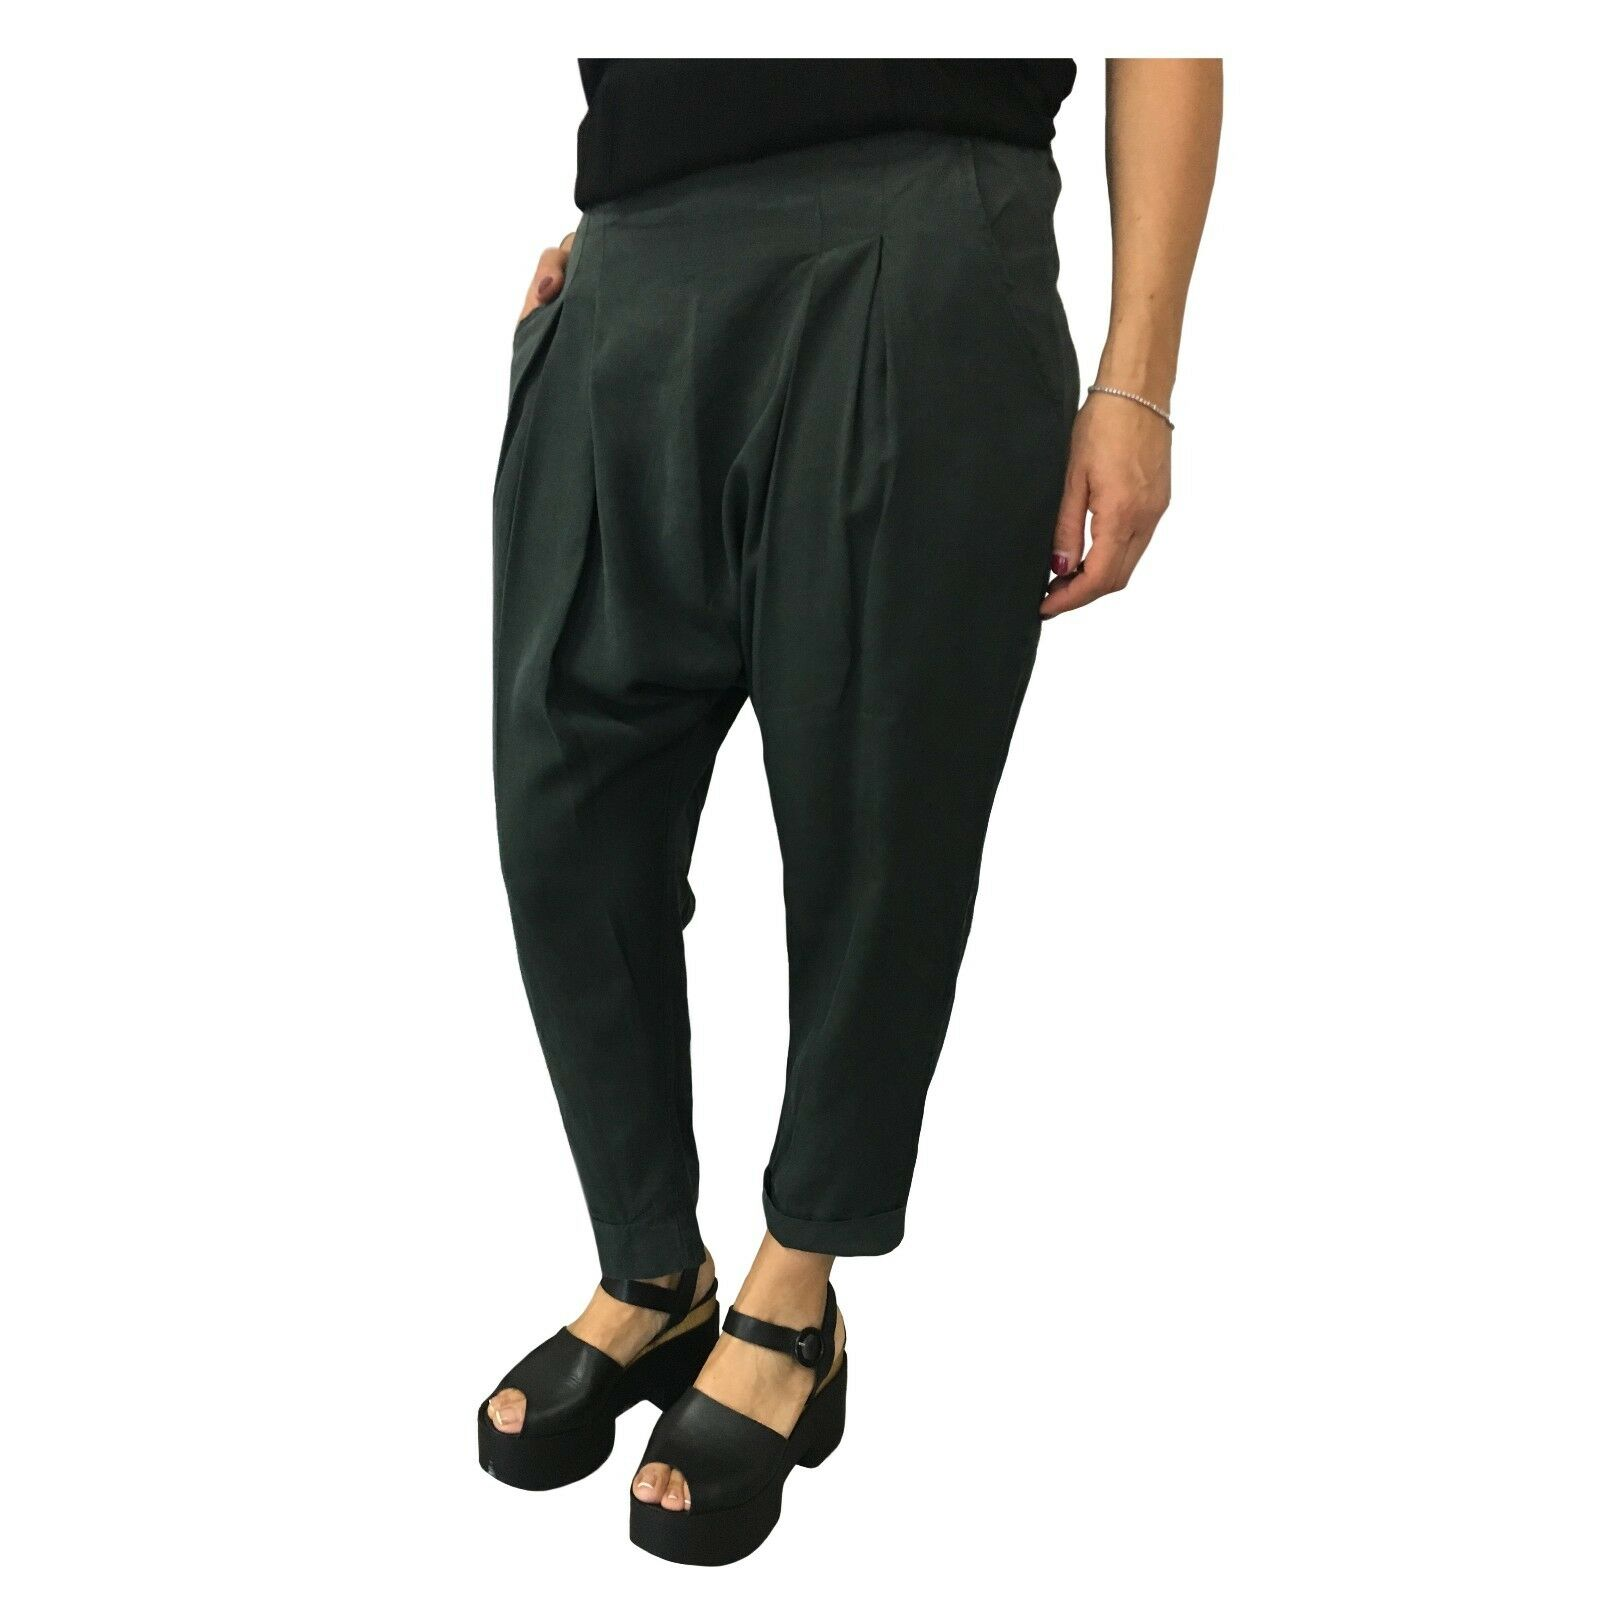 HUMILITY 1949 women's trousers dark green with elastic mod HA6100 MADE IN ITALY